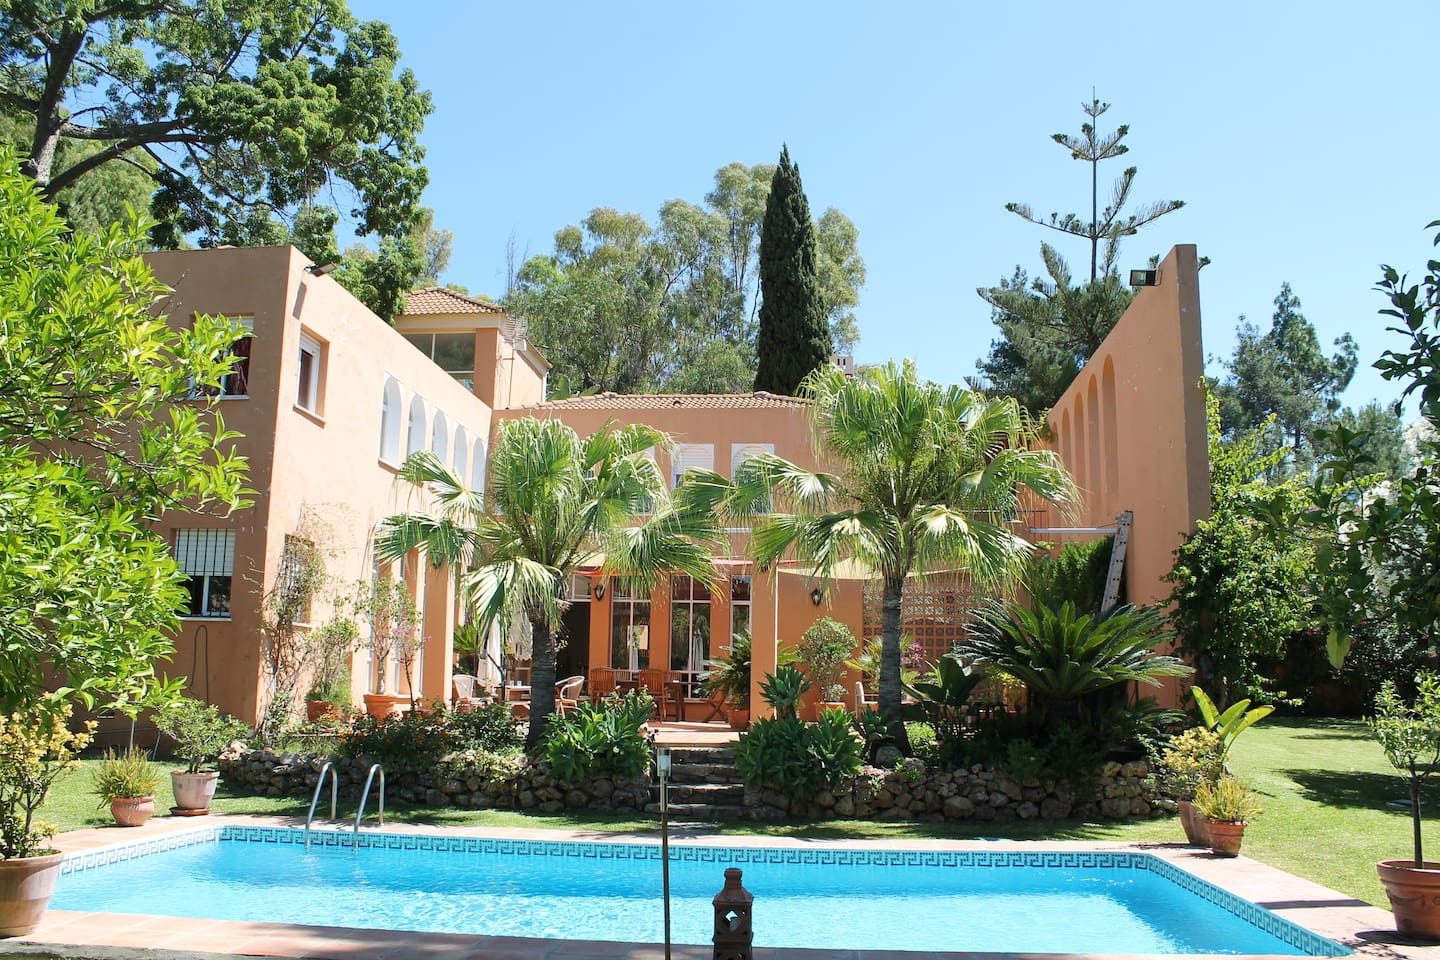 belle villa andalouse 5 chambres avec piscine villas for rent in marbella andaluca spain